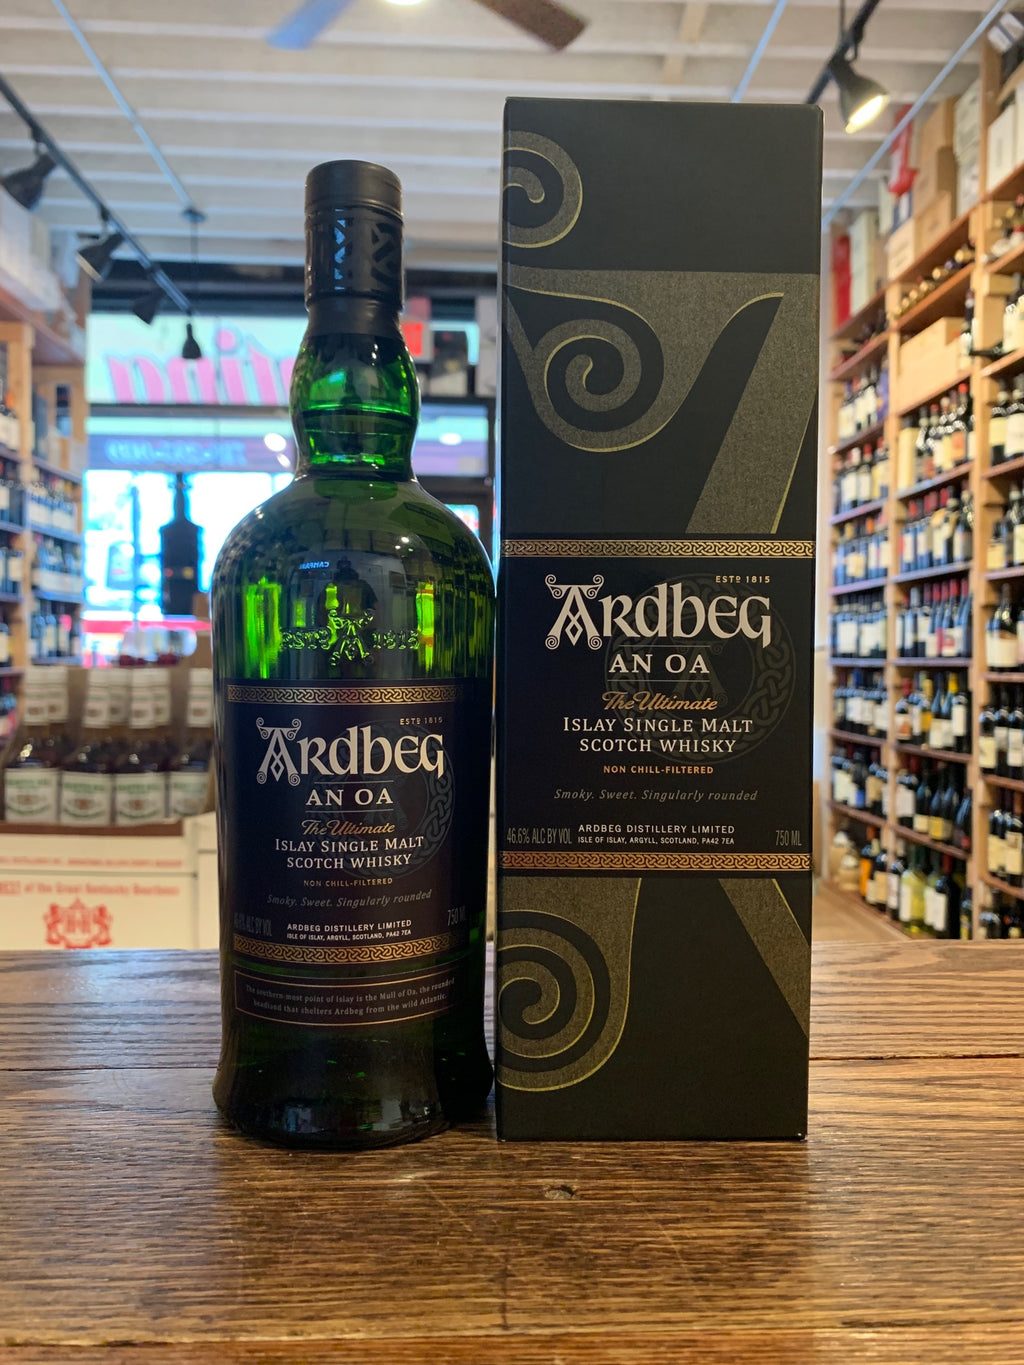 Ardbeg 750mL Scotch